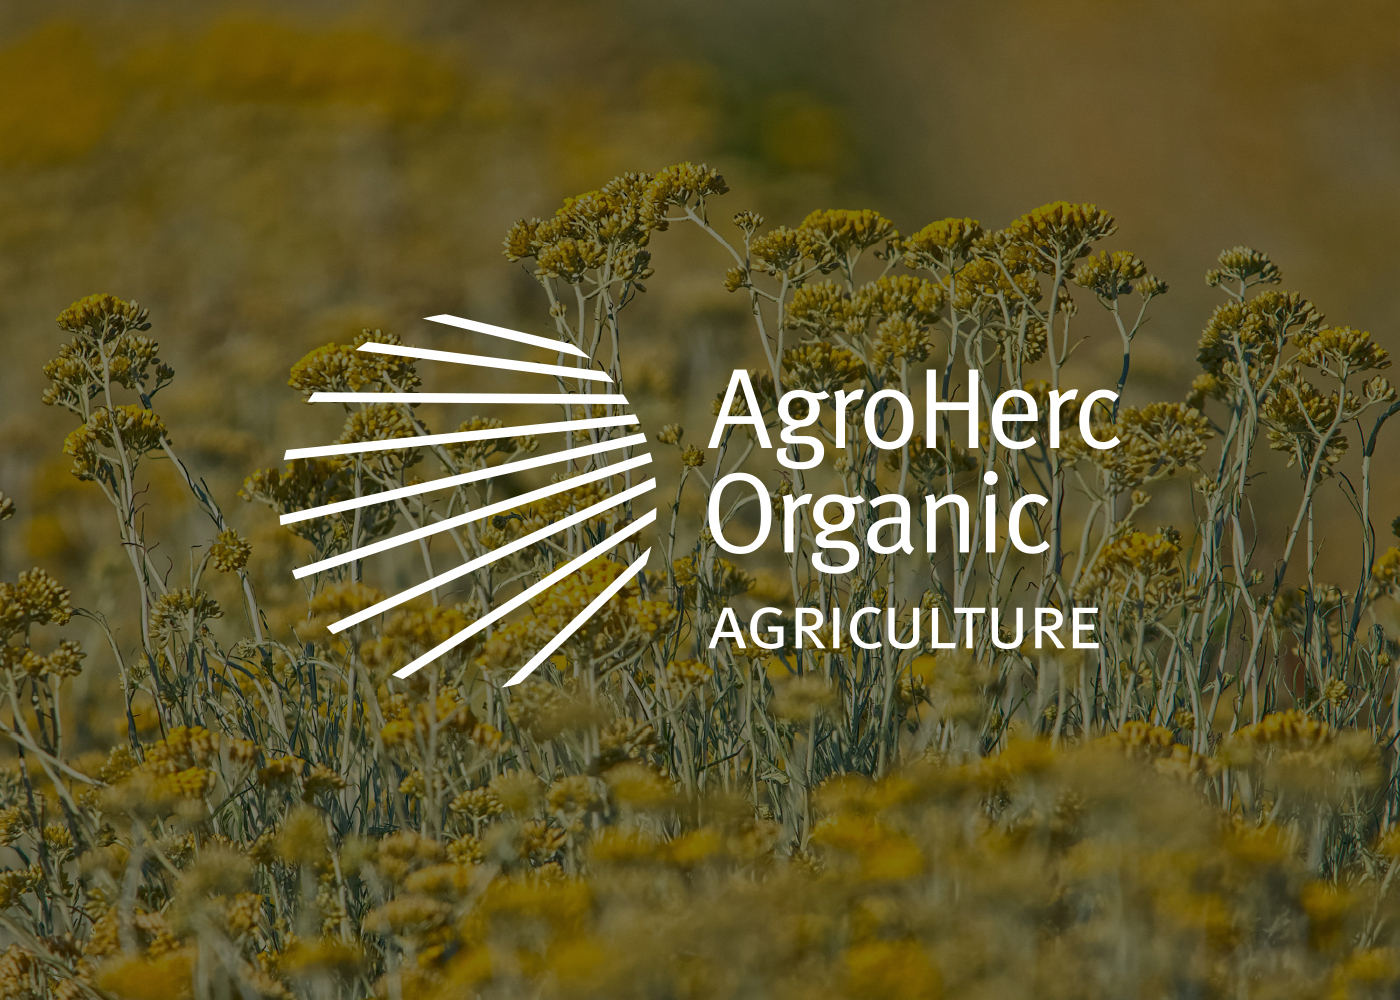 Visual Identity Design for the Largest Organic Agricultural Producer in Herzegovina